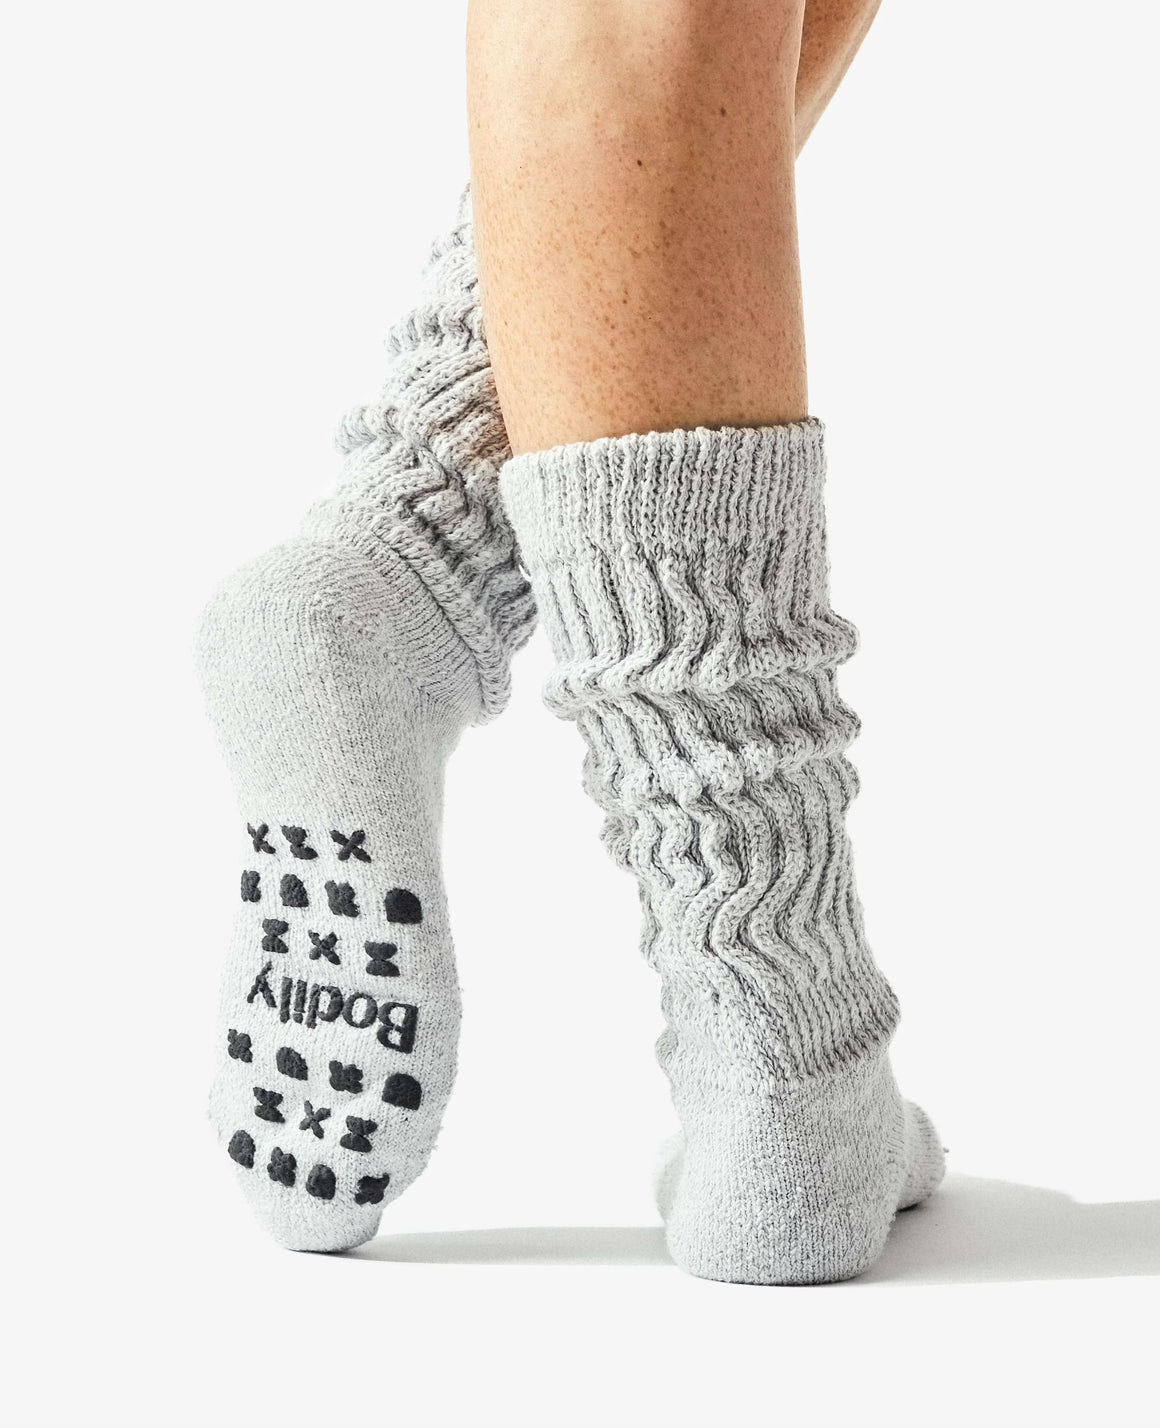 Our foam tread Cozy Sock is made with extra stretch to accommodate pregnancy and postpartum swelling